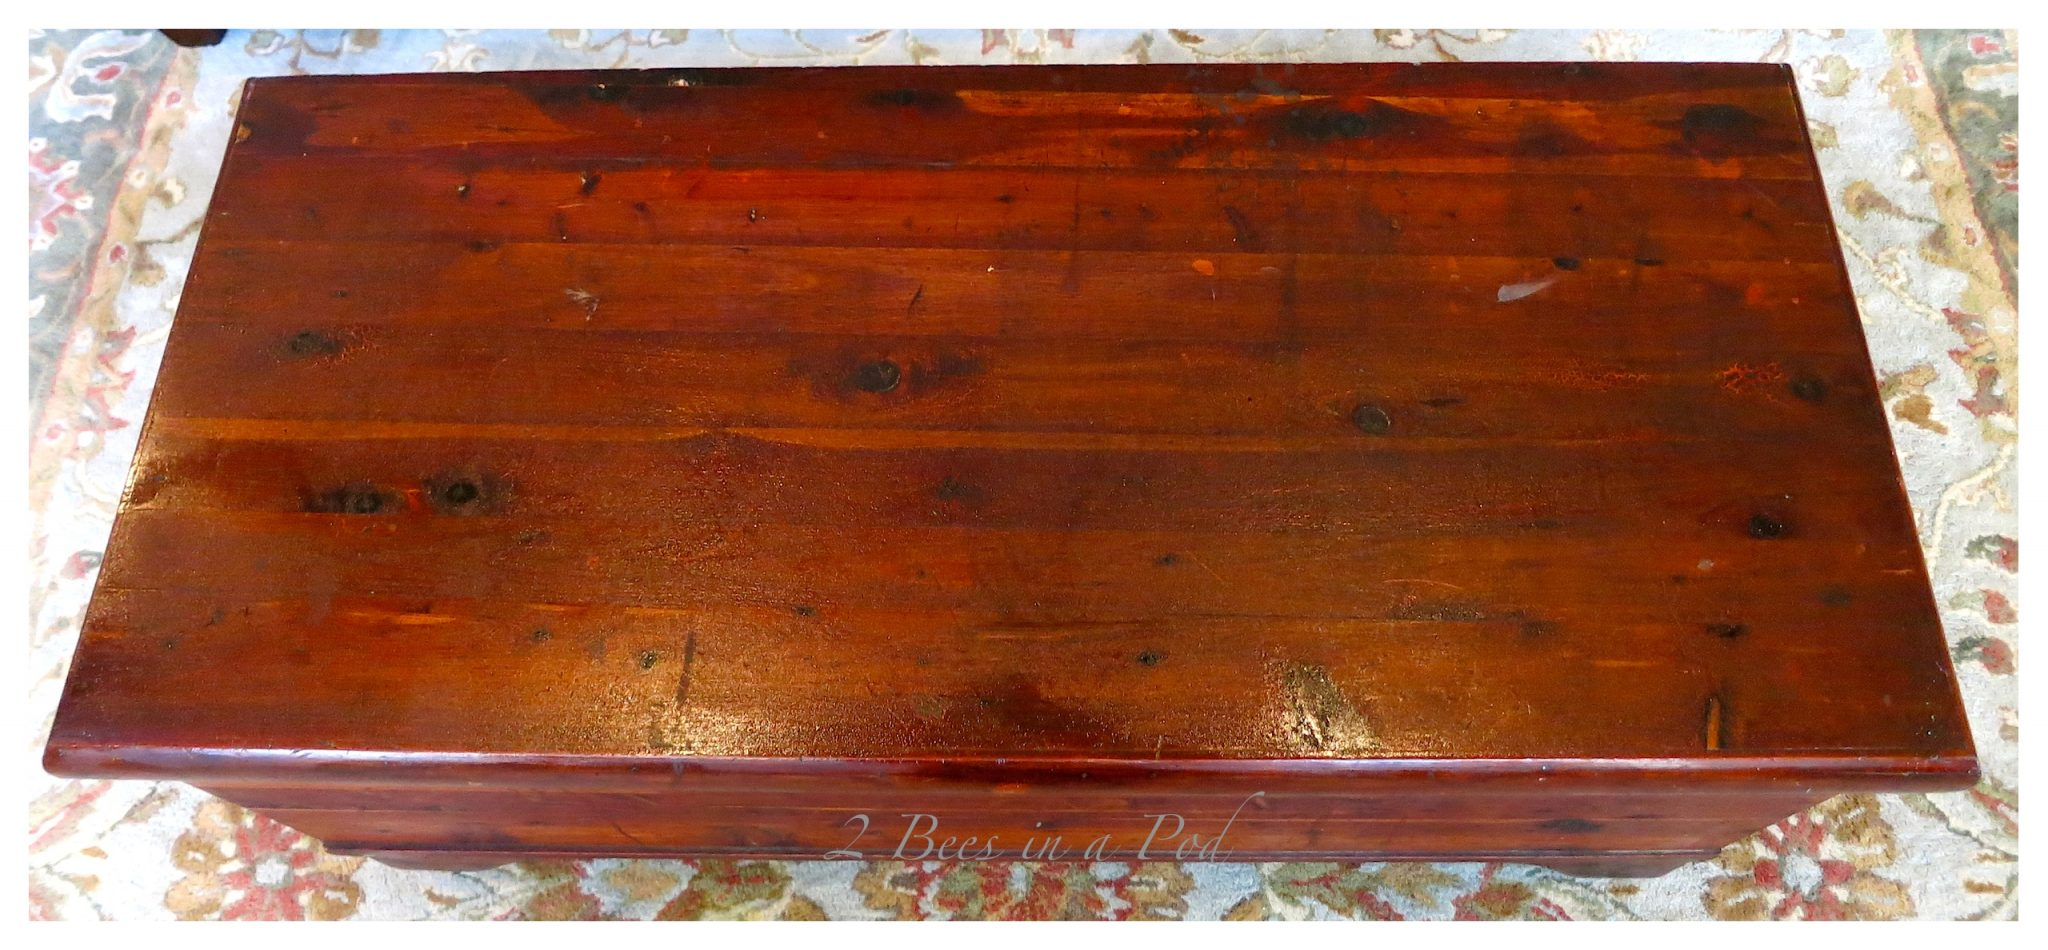 Reviving an antique vintage cedar hope chest using Old English scratch cover. Really nourishes the old wood and brings back the natural luster.